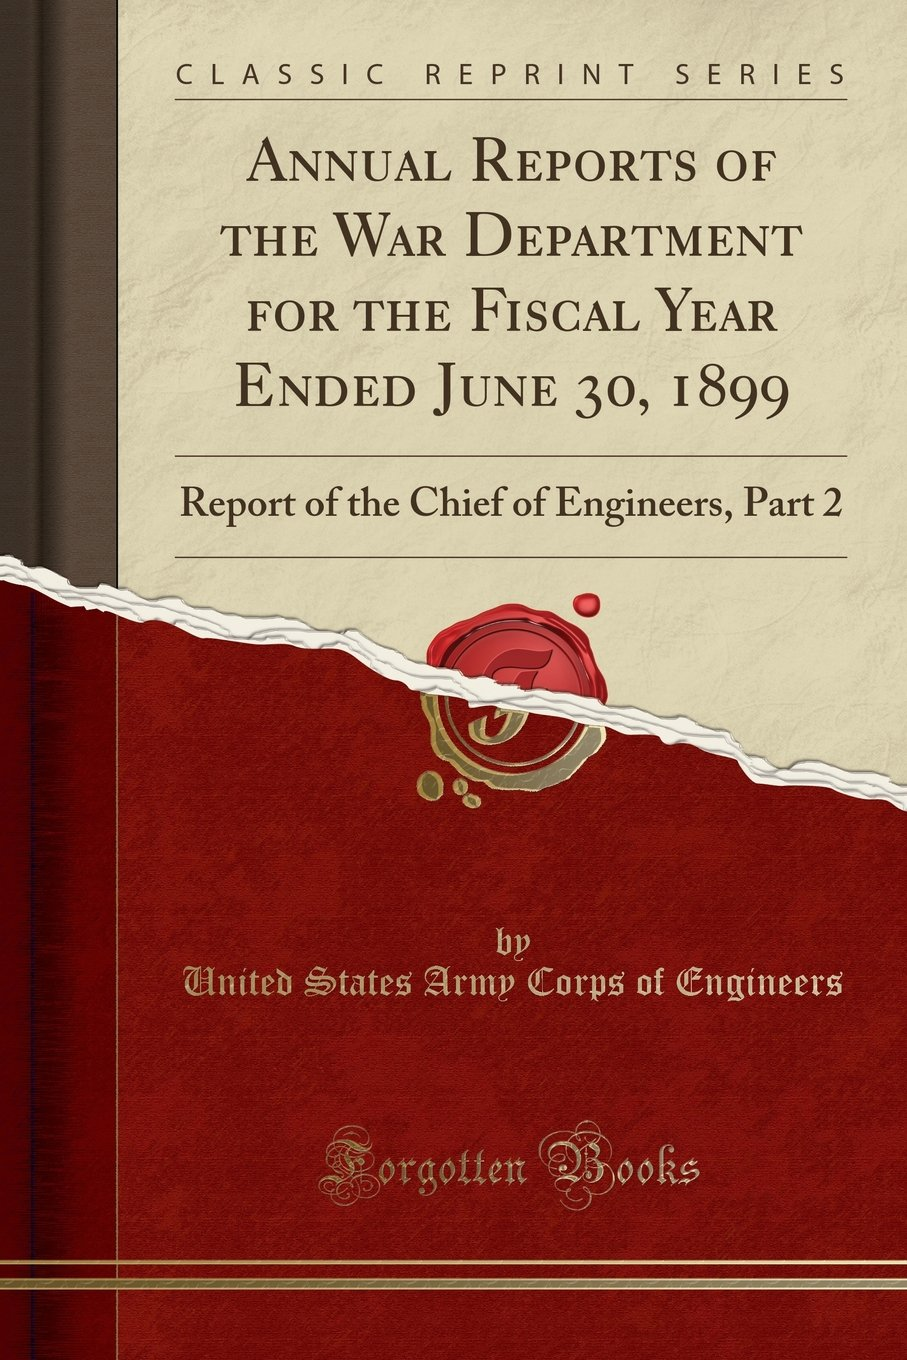 Annual Reports of the War Department for the Fiscal Year Ended June 30, 1899: Report of the Chief of Engineers, Part 2 (Classic Reprint) pdf epub